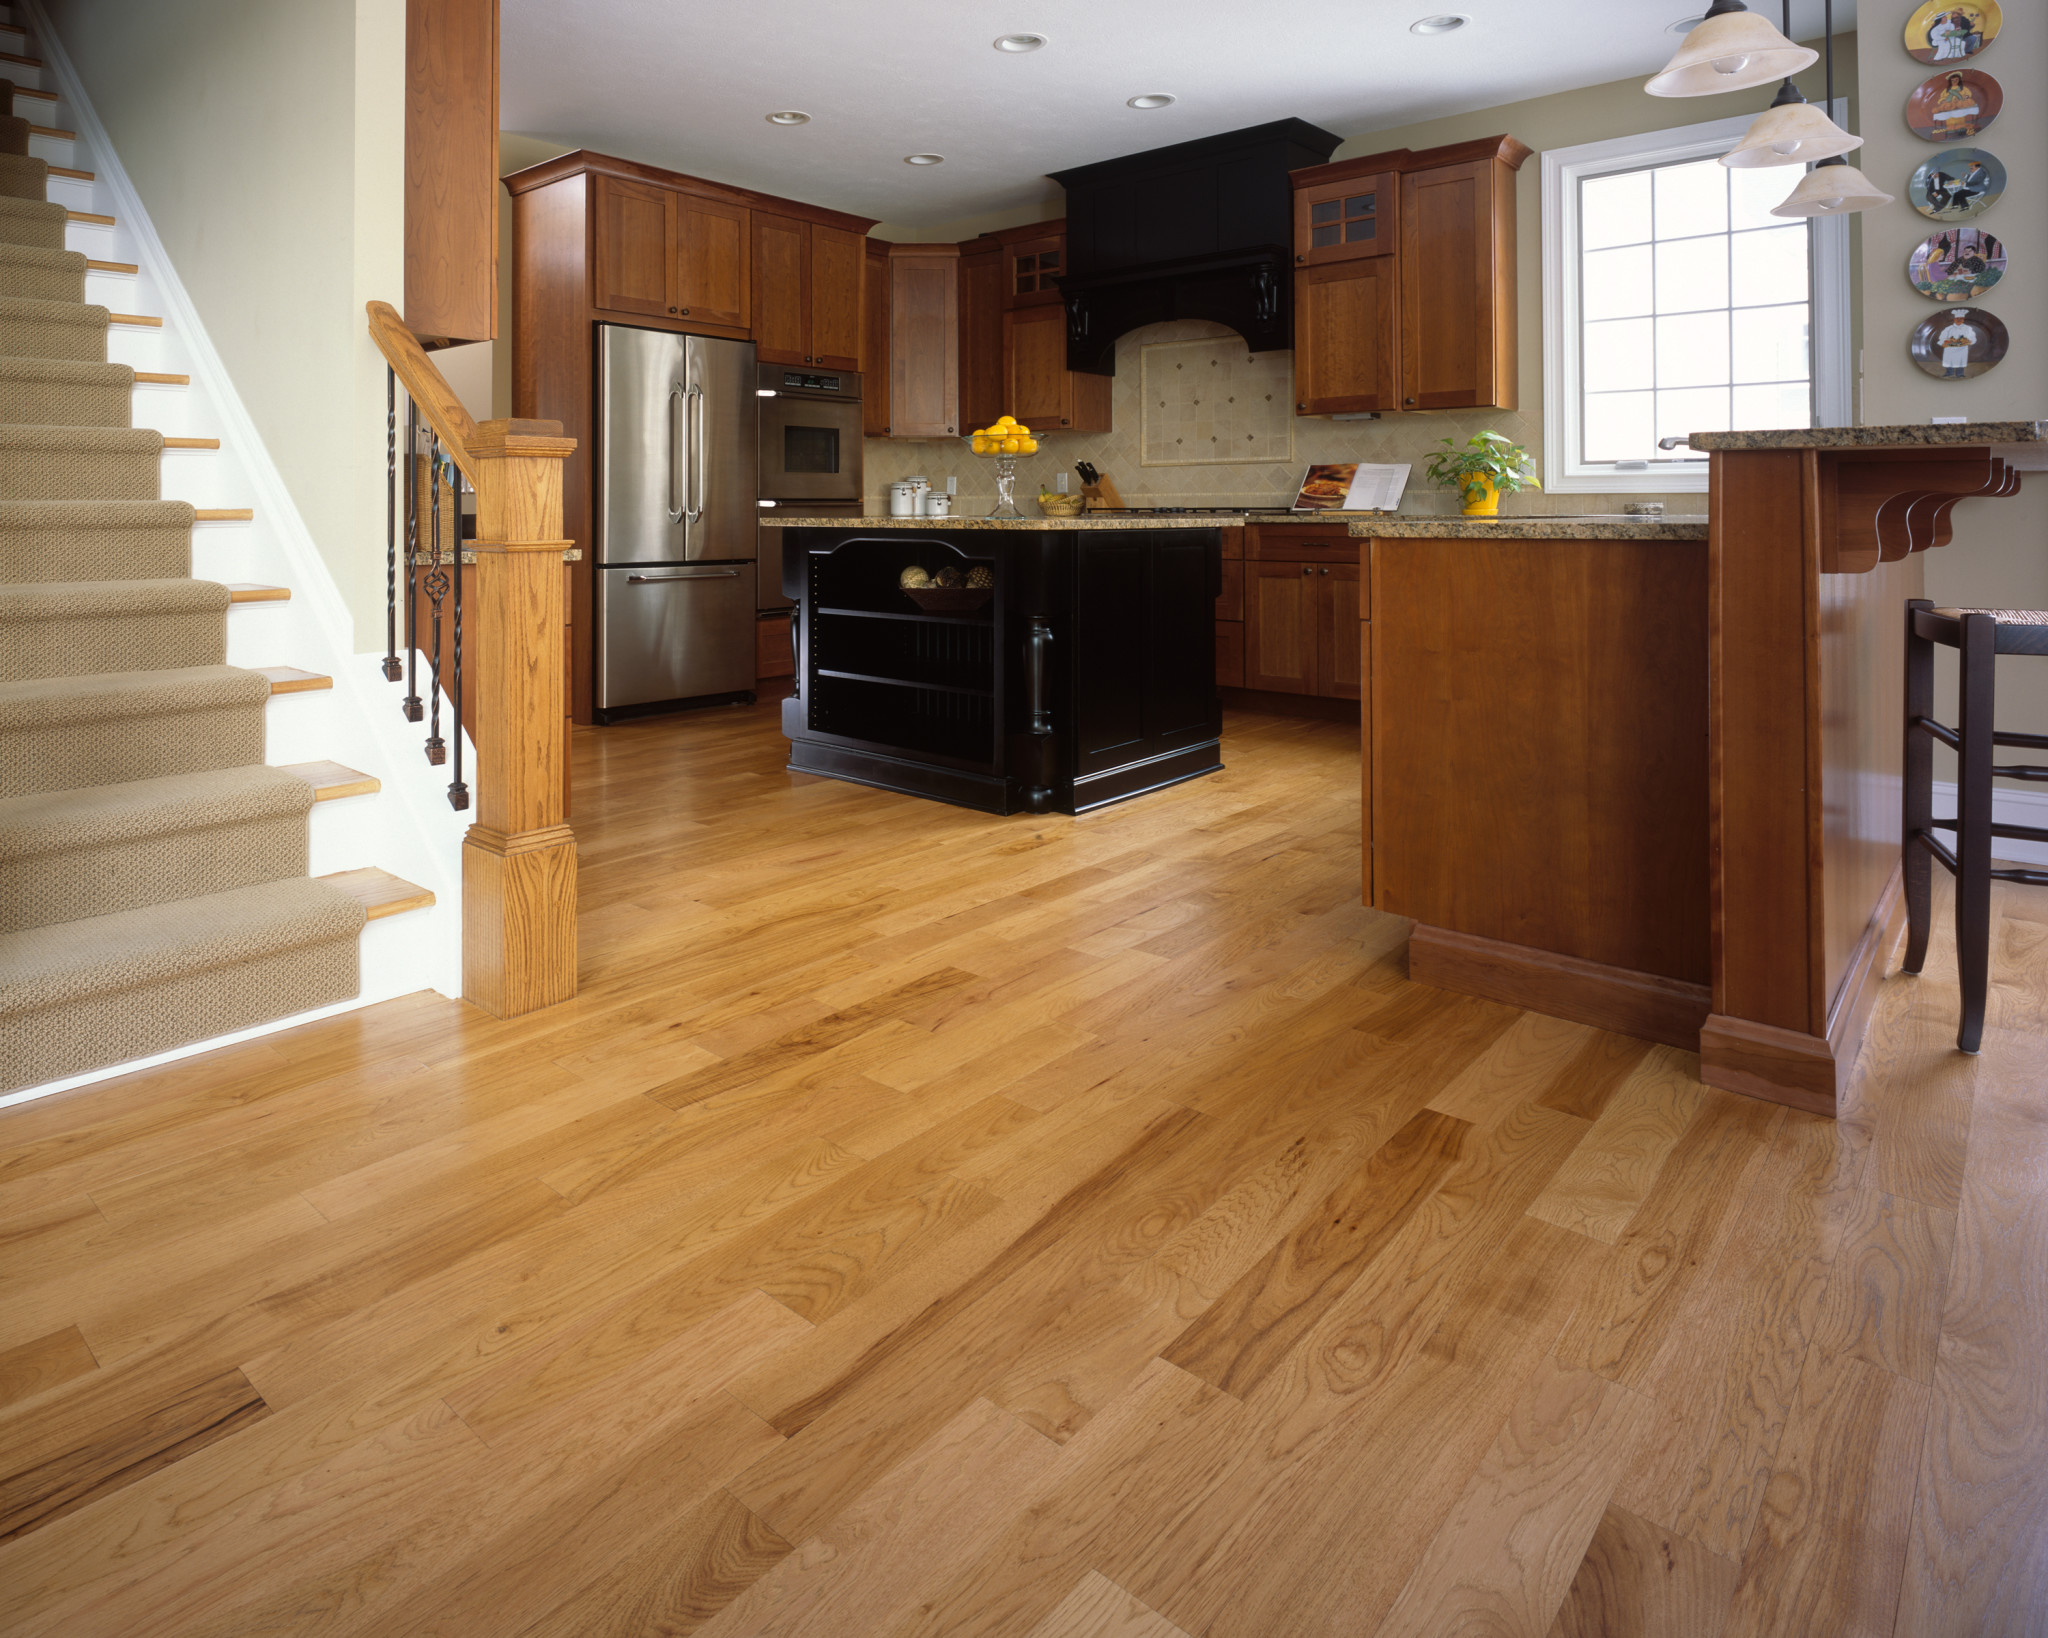 Wood Floors / Tile / Linoleum | Jmarvinhandyman